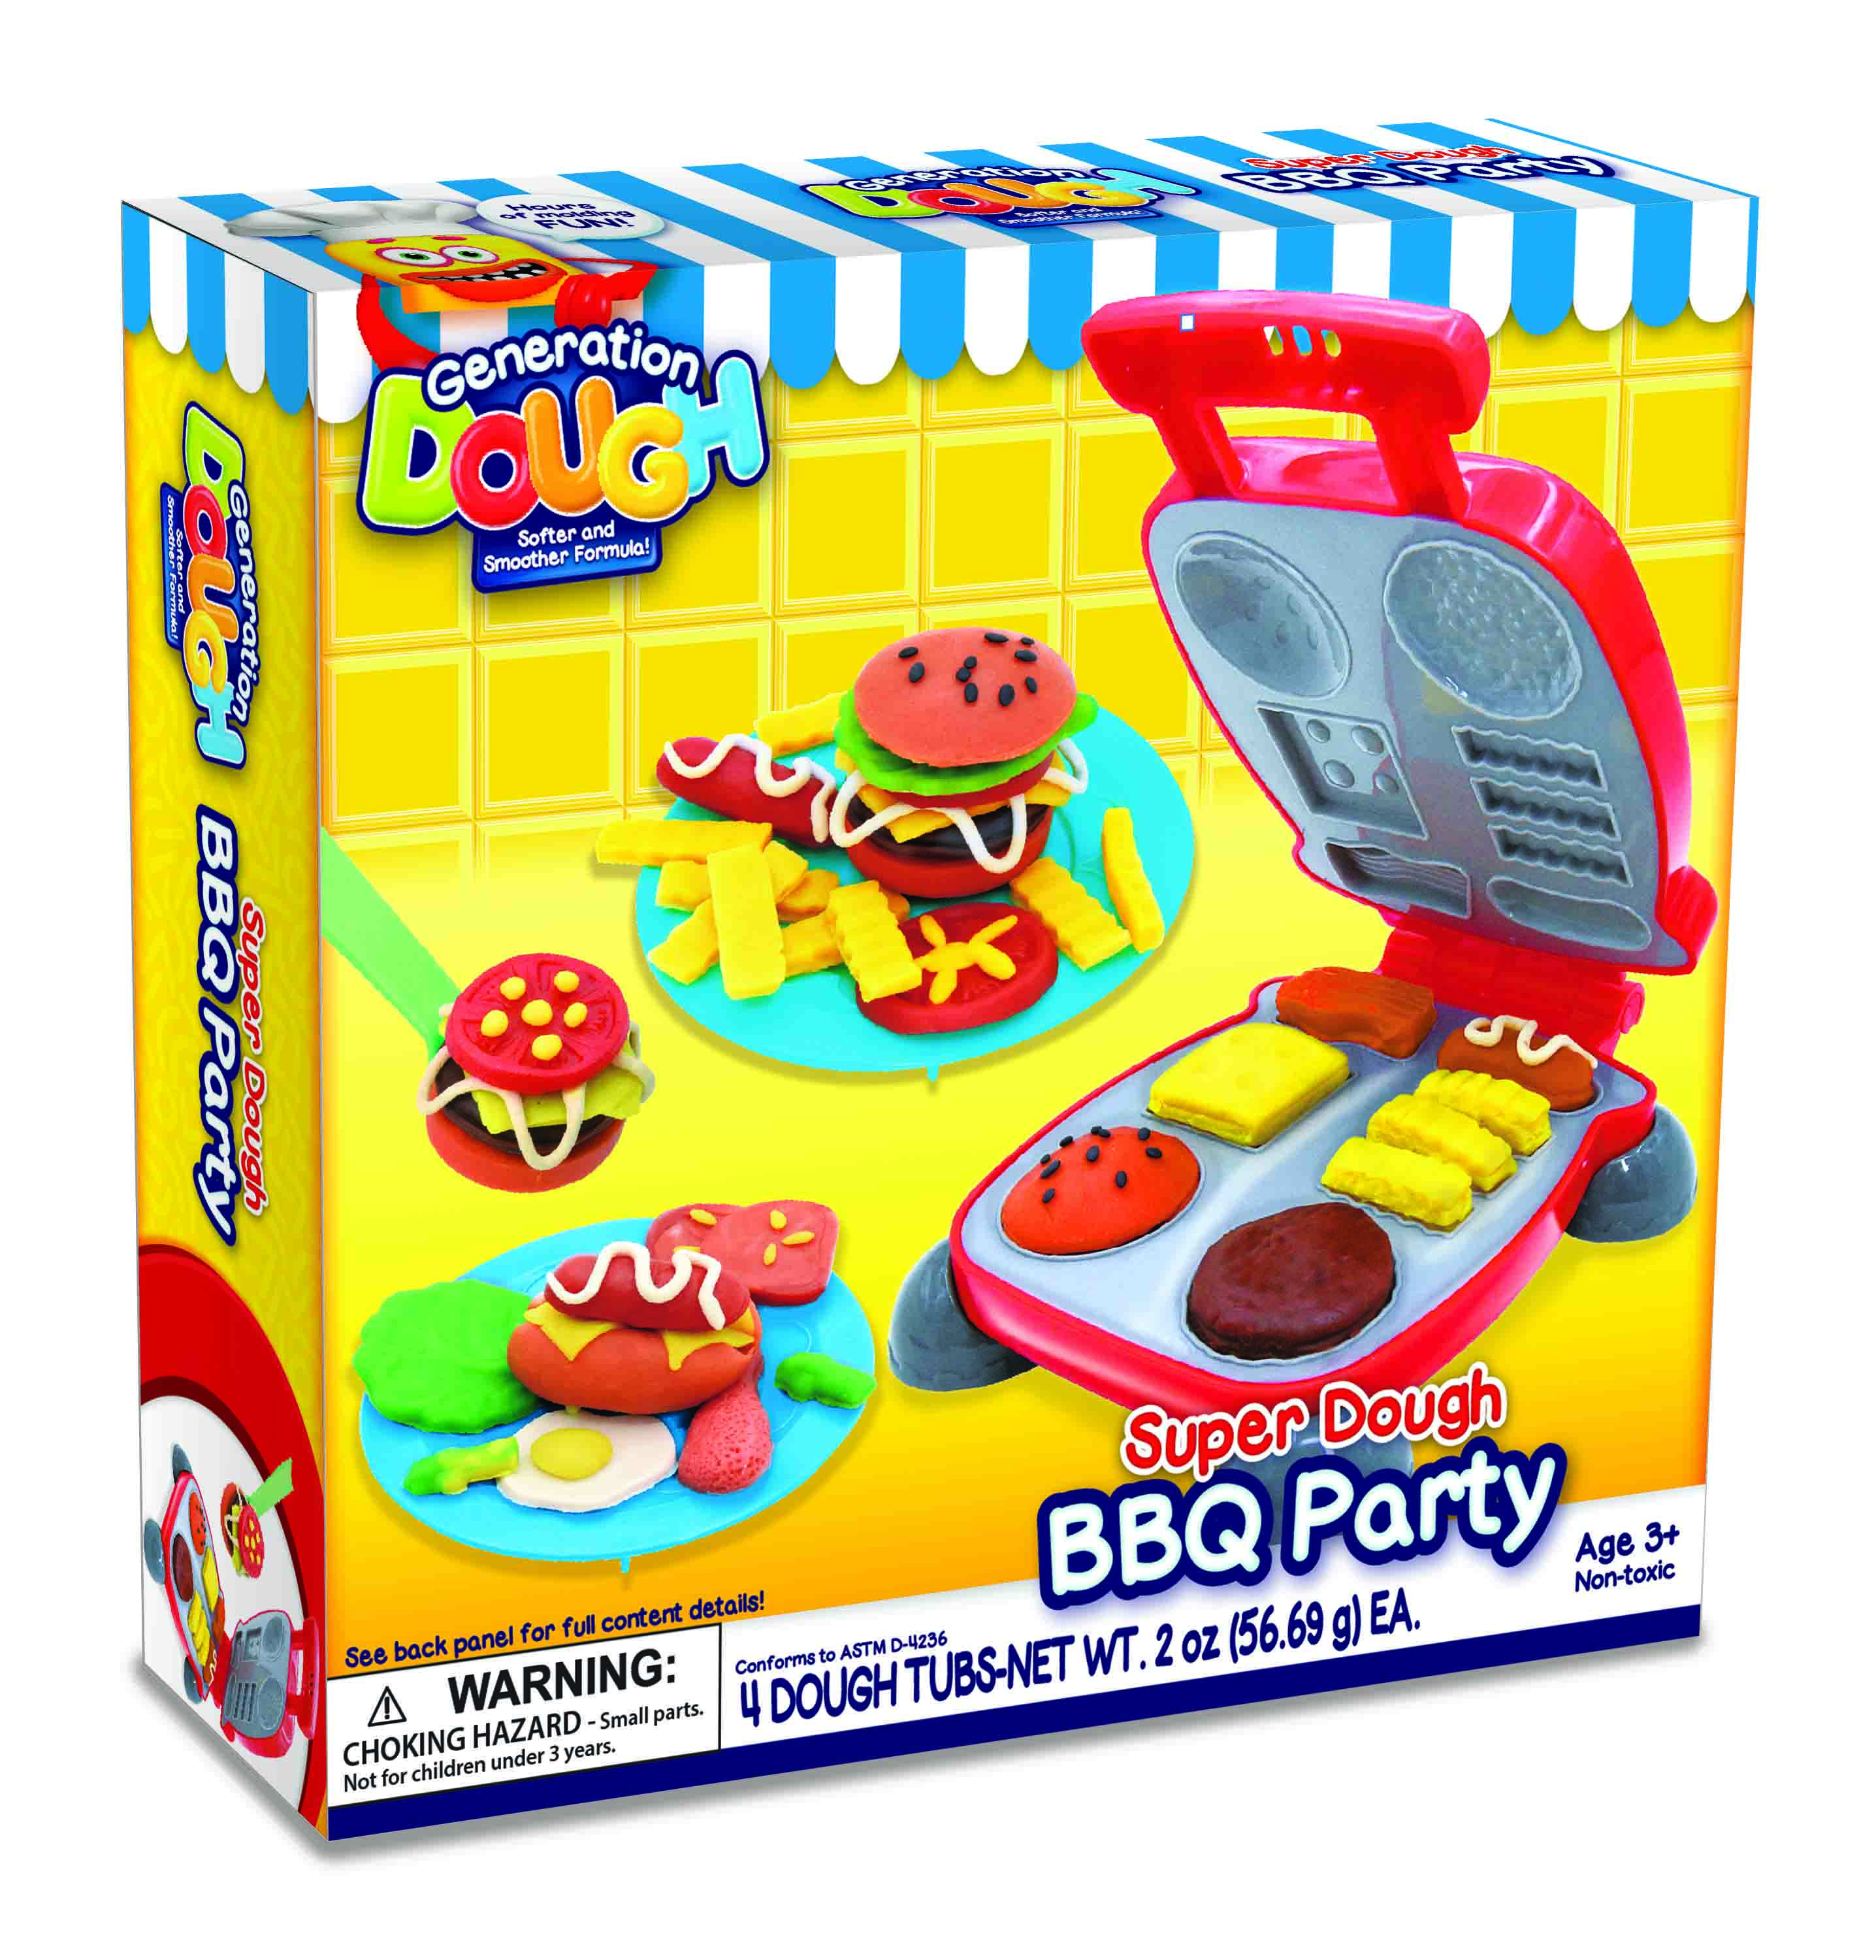 SUPER DOUGH BBQ PARTY